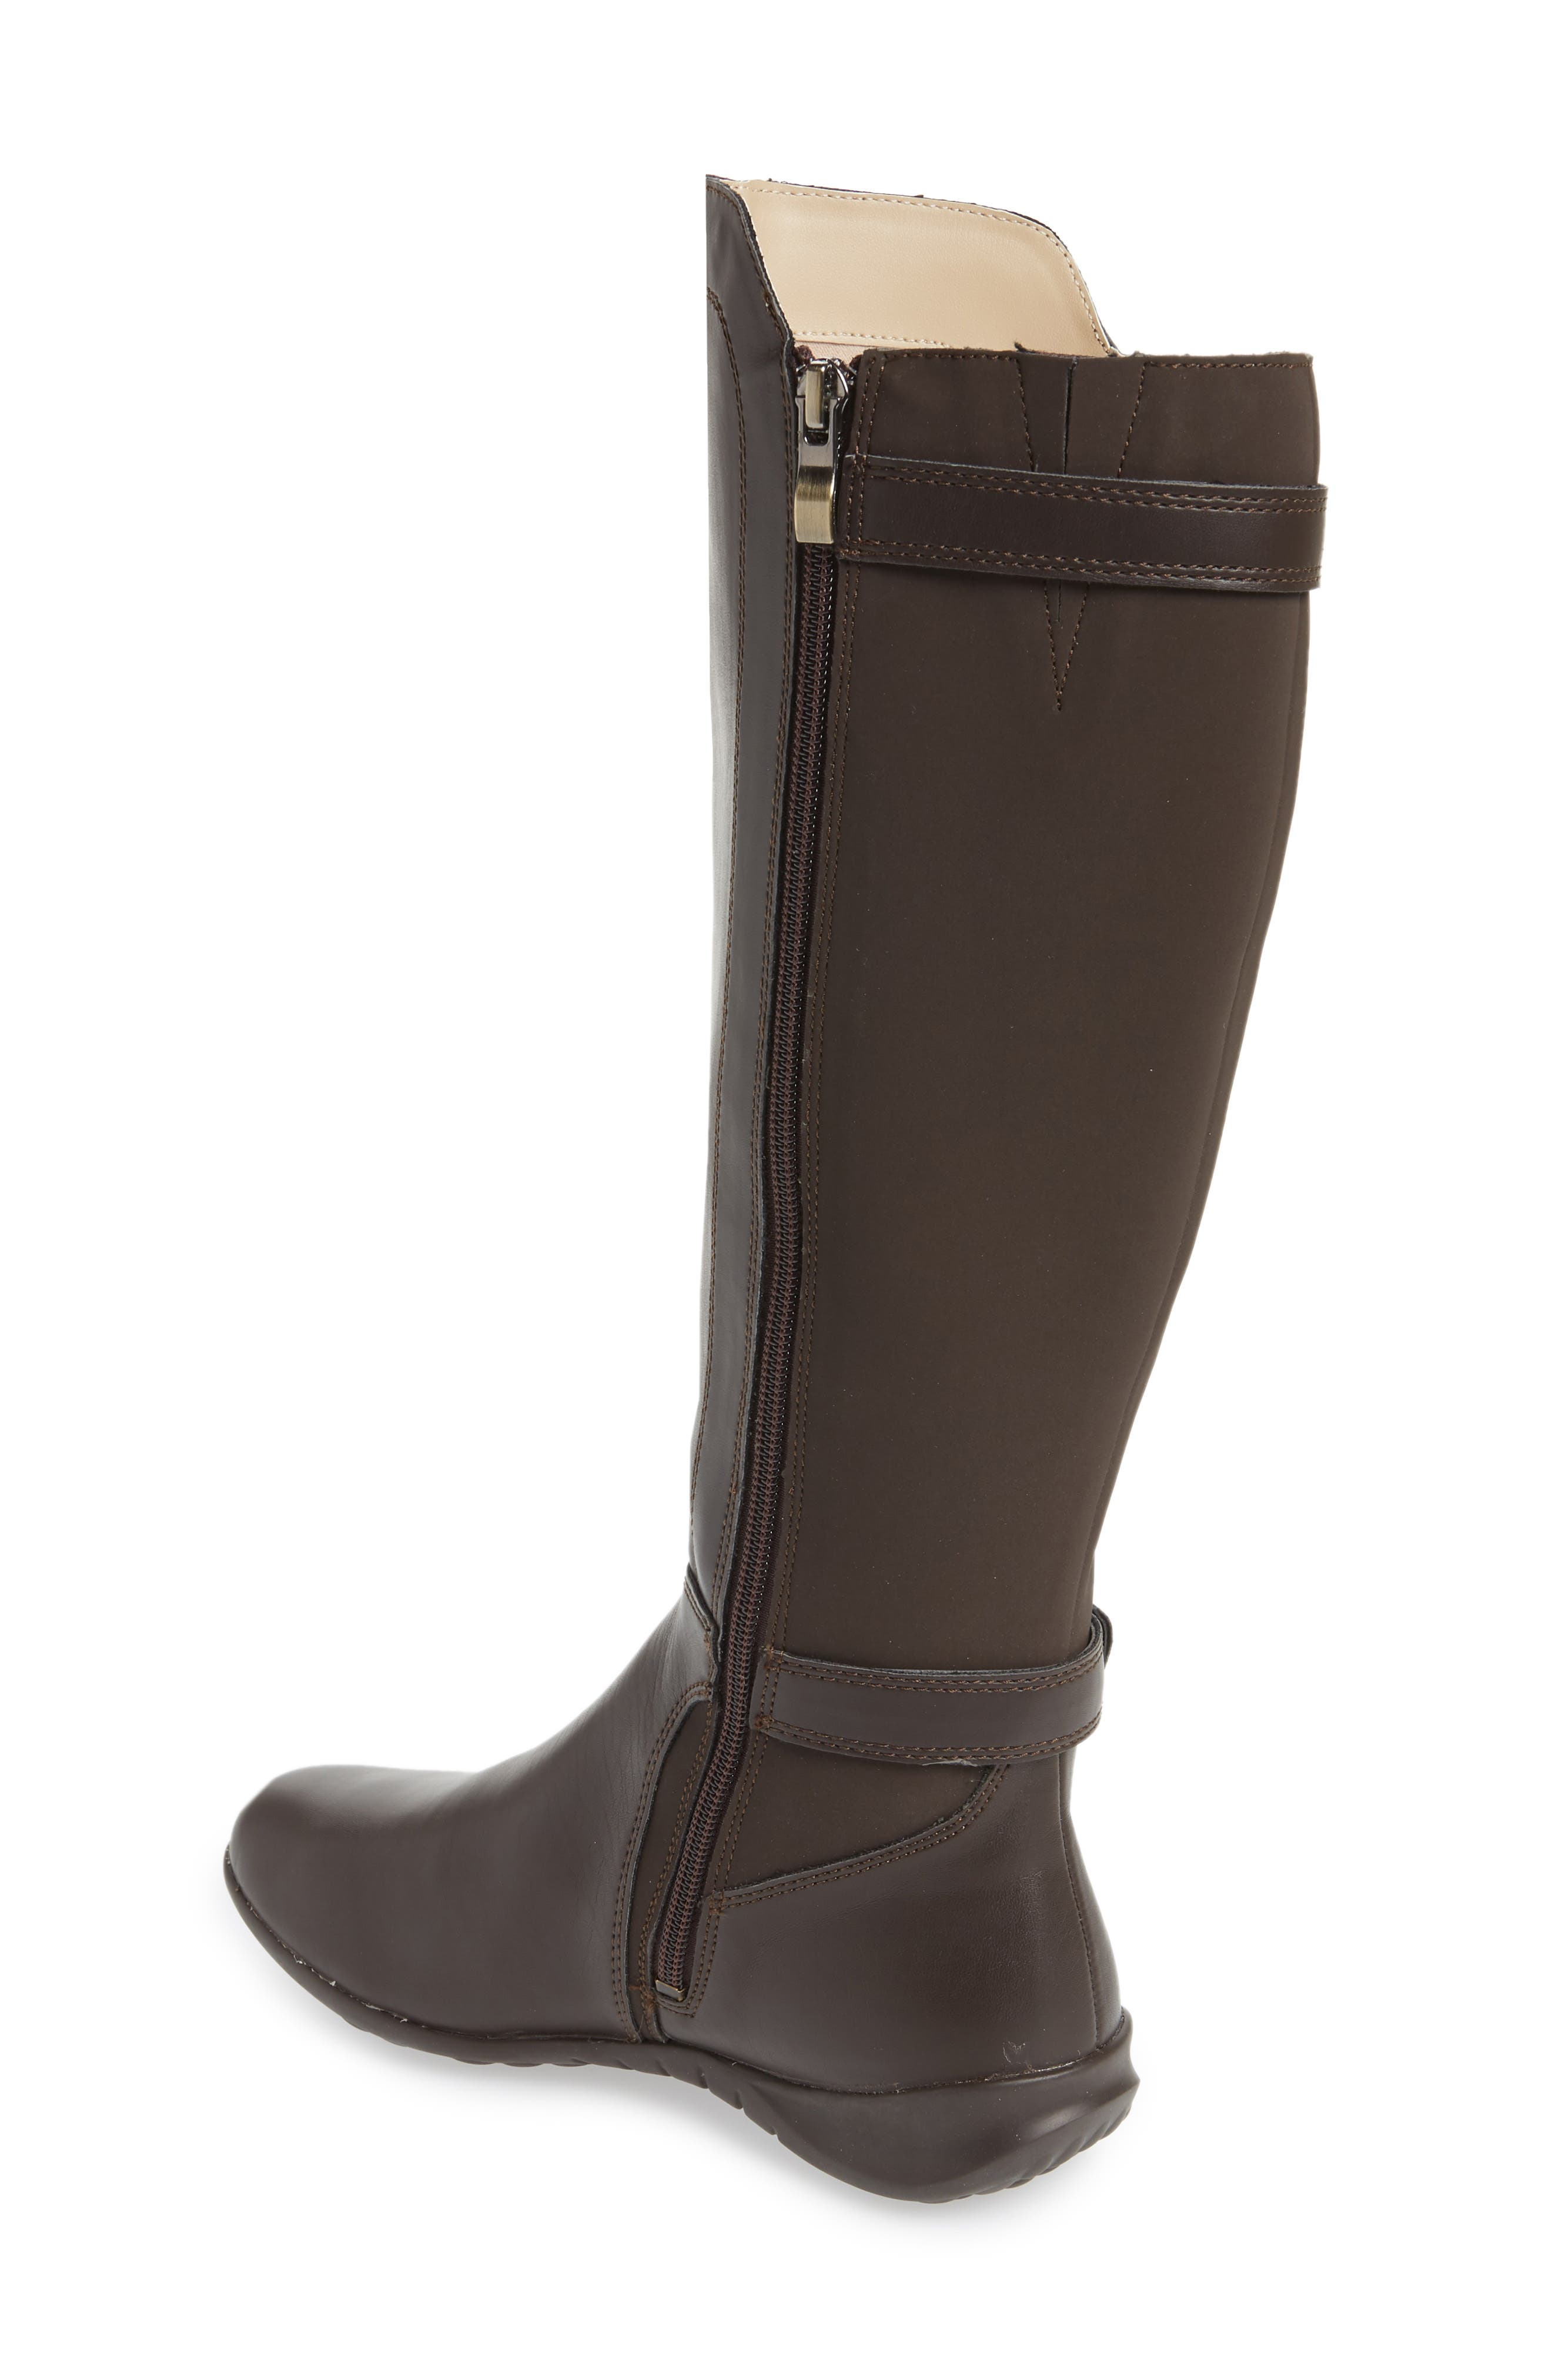 HUSH PUPPIES<SUP>®</SUP>, Bria Knee High Boot, Alternate thumbnail 2, color, DARK BROWN FAUX LEATHER